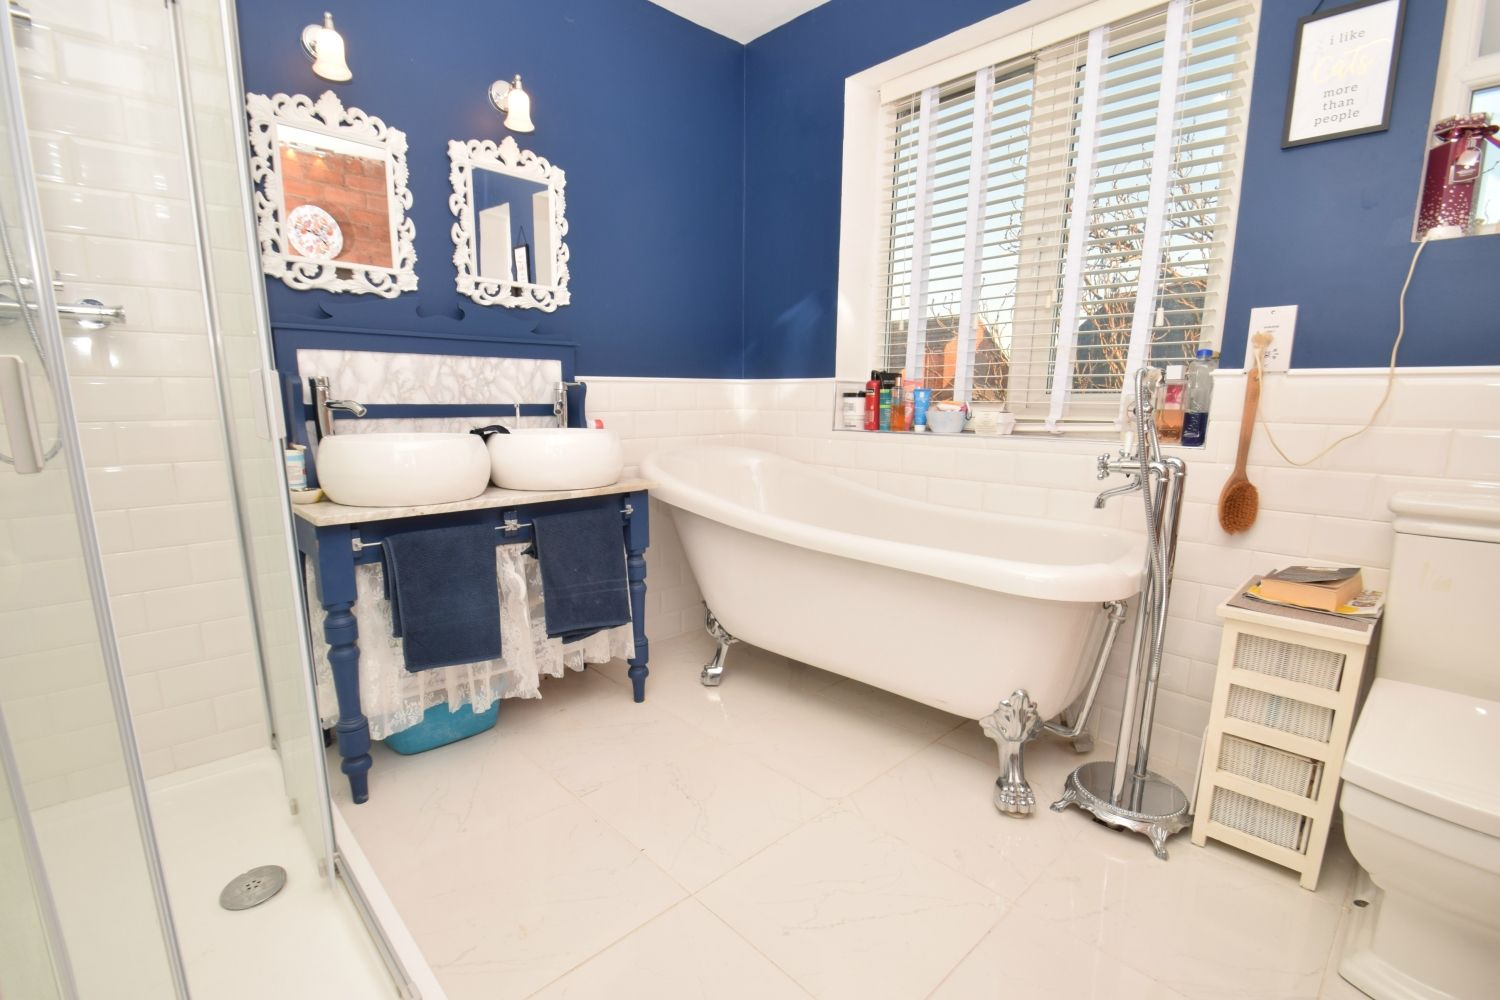 4 bed semi-detached for sale in Upland Grove, Bromsgrove, B61 19